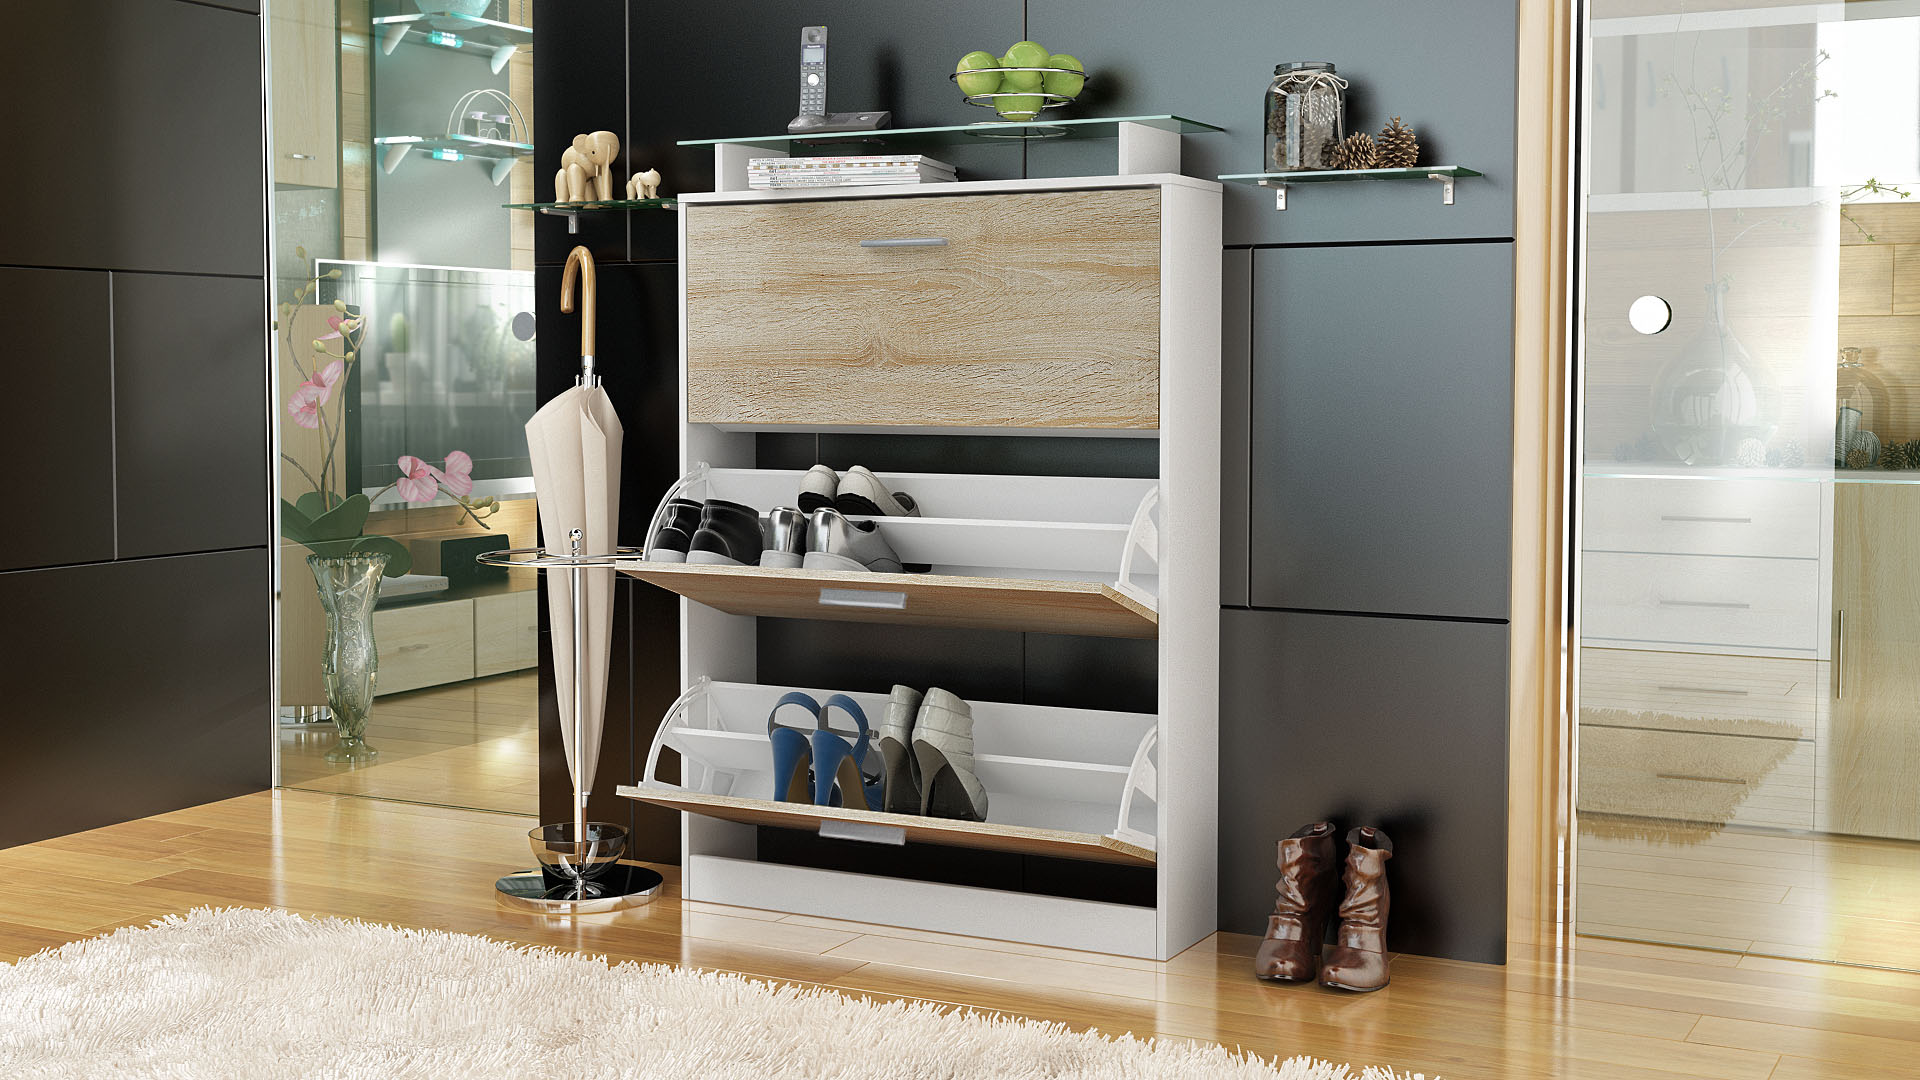 shoe storage rack cabinet organizer lavia in white high gloss natural tones ebay. Black Bedroom Furniture Sets. Home Design Ideas